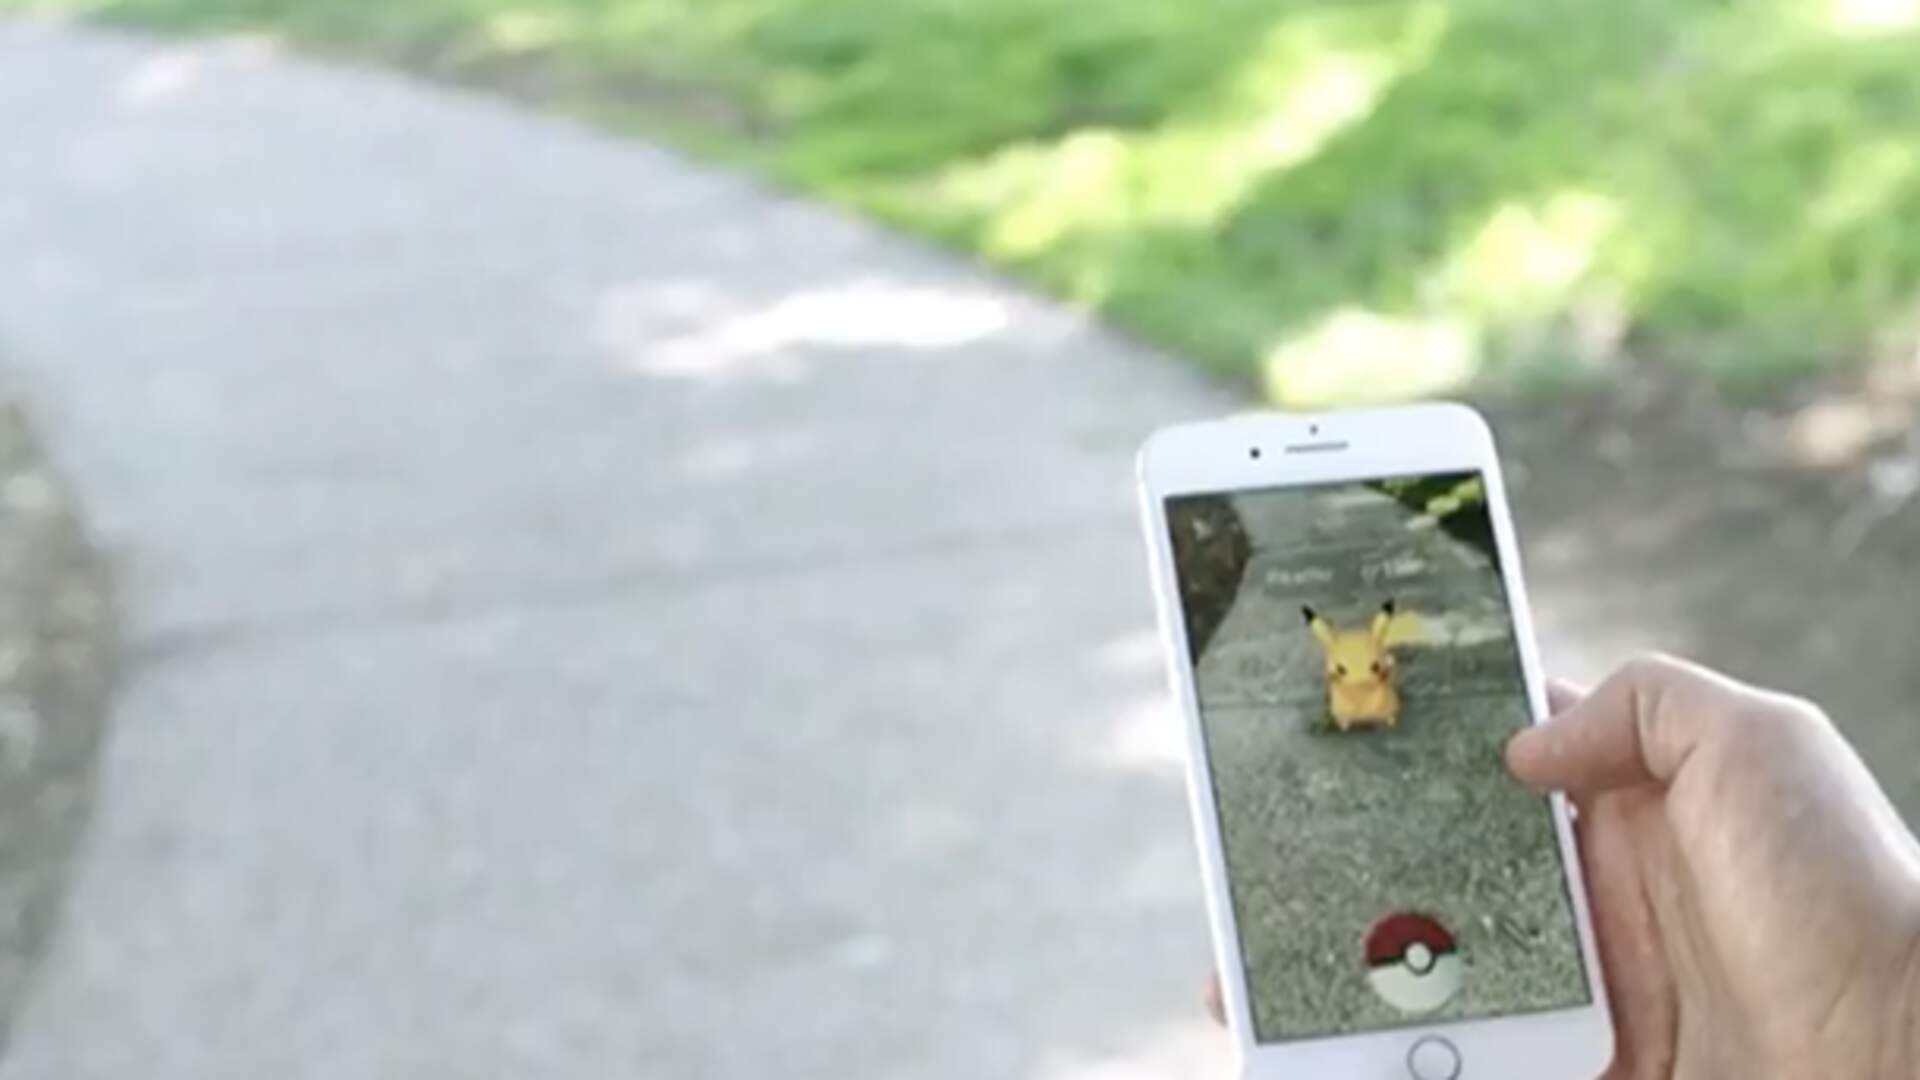 Apple's ARKit Brings More Dynamic Augmented Reality to iOS, Including Pokémon Go